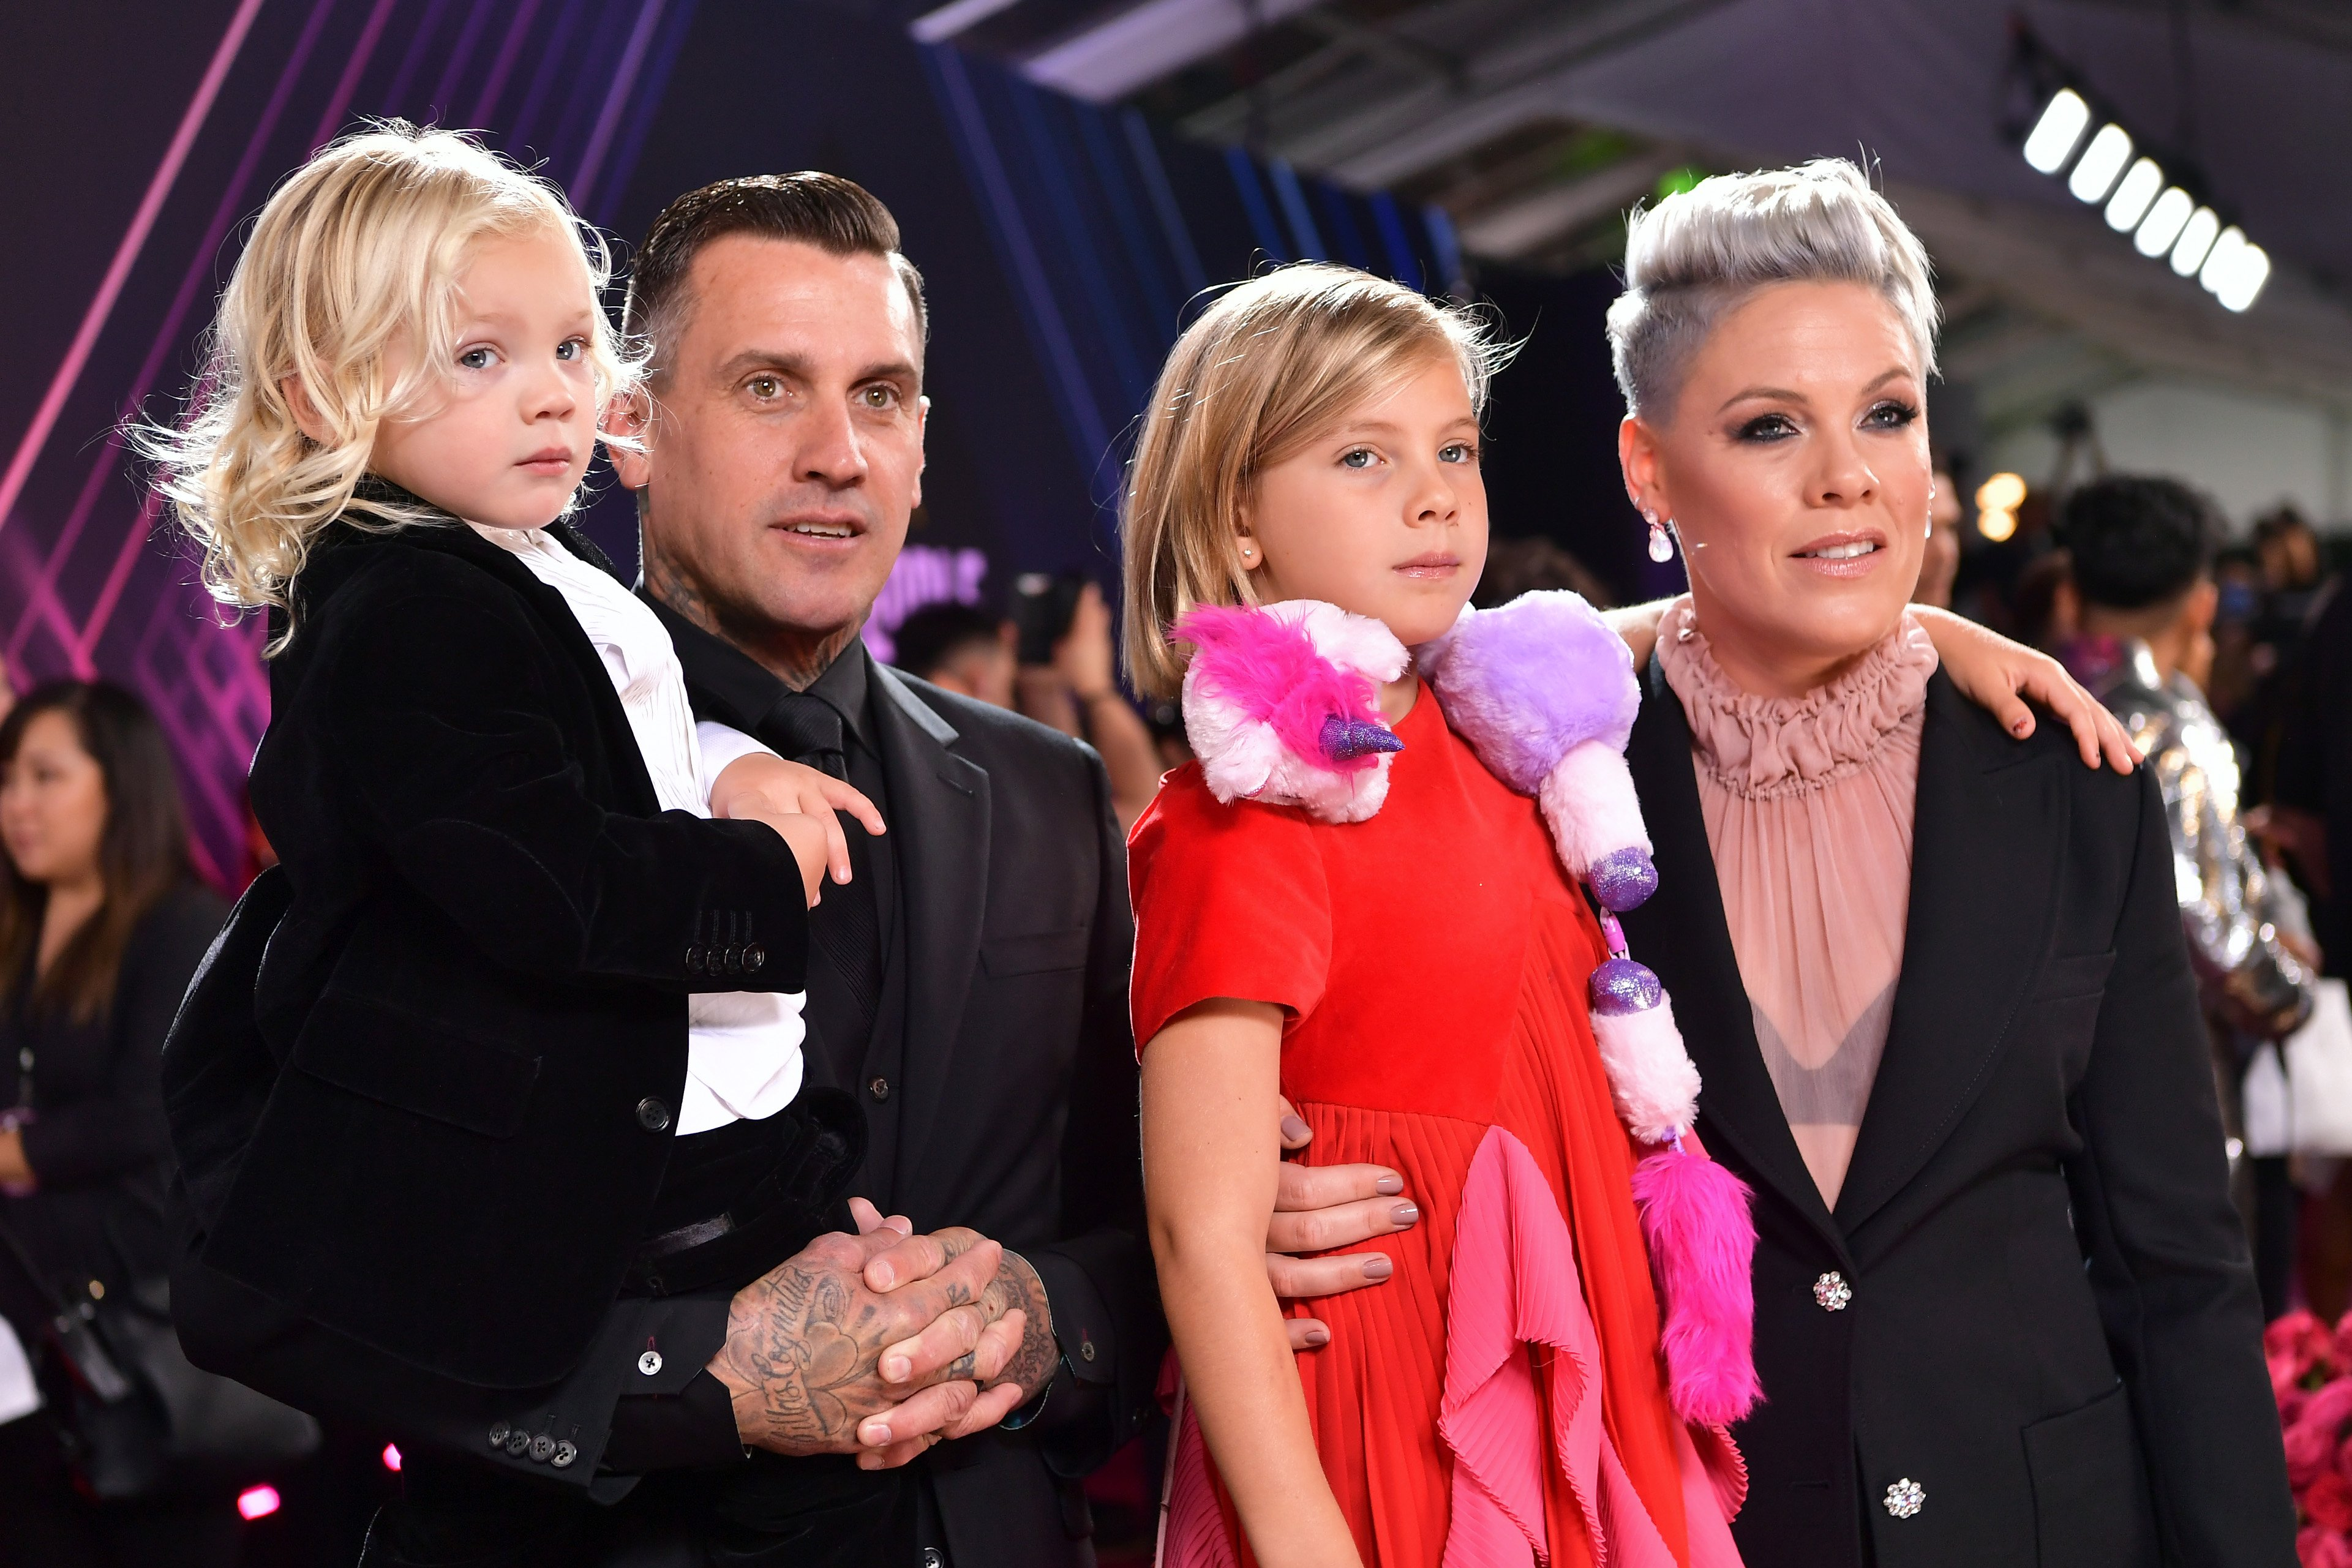 Carey Hart with wife Pink and their two kids Willow and Jameson attend the People's Choice Awards in Santa Monica, California on November 10, 2019 | Photo: Getty Images